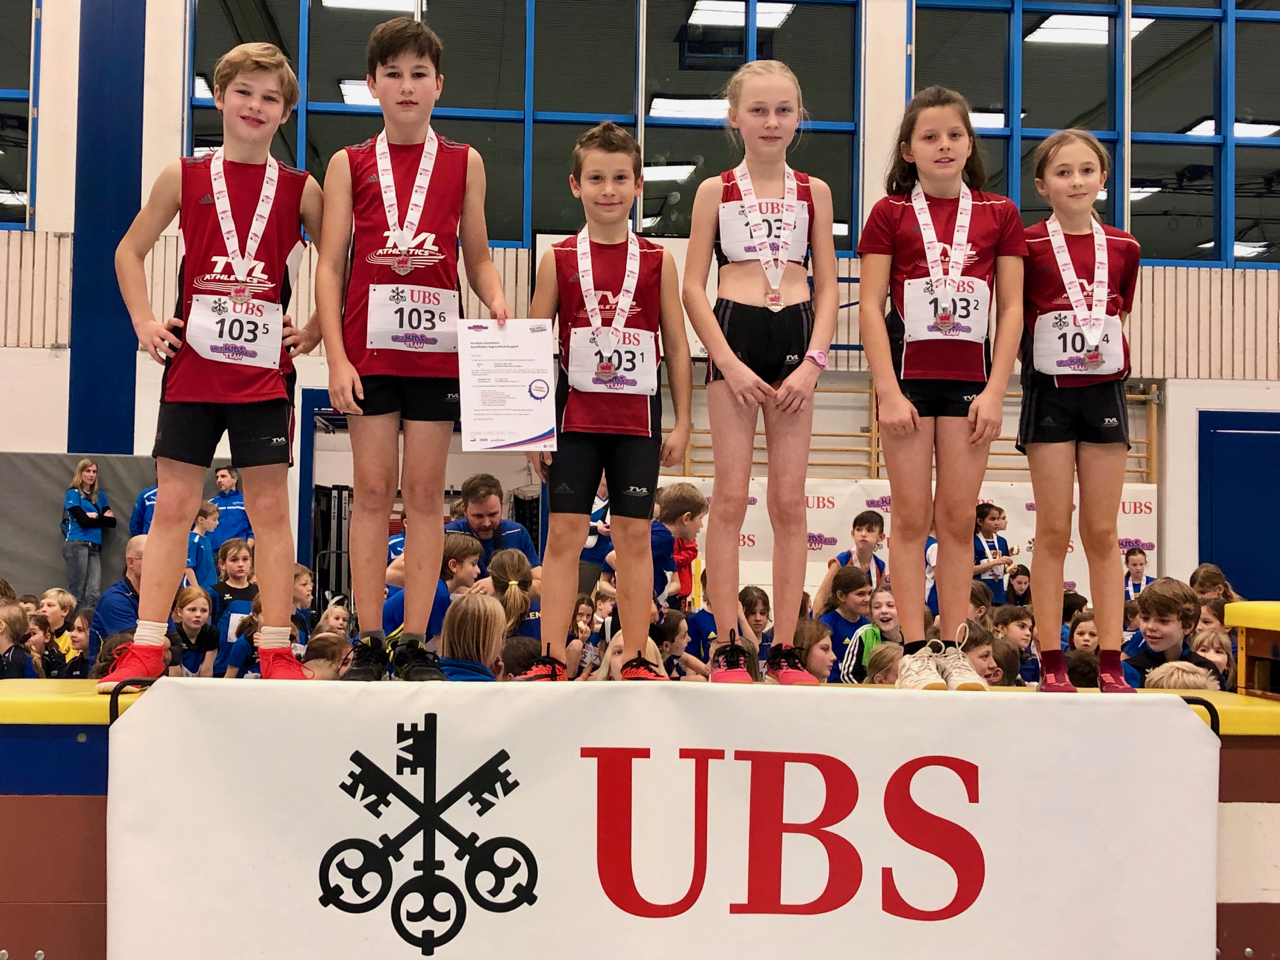 Bericht – UBS Kids Cup Team in Thun